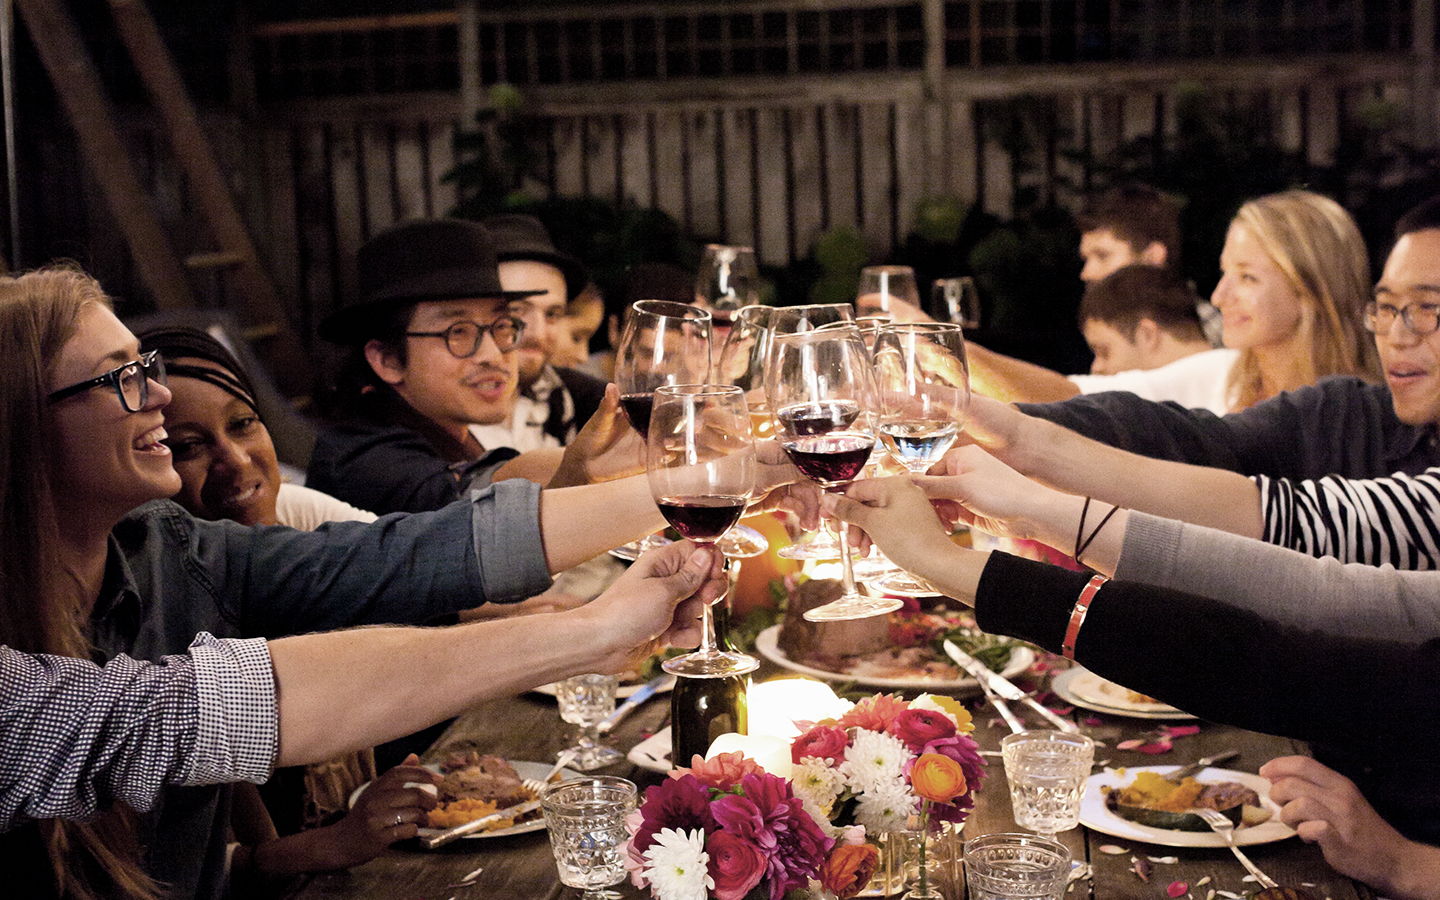 Friends enjoying dinner outside, raising their glass for a toast.